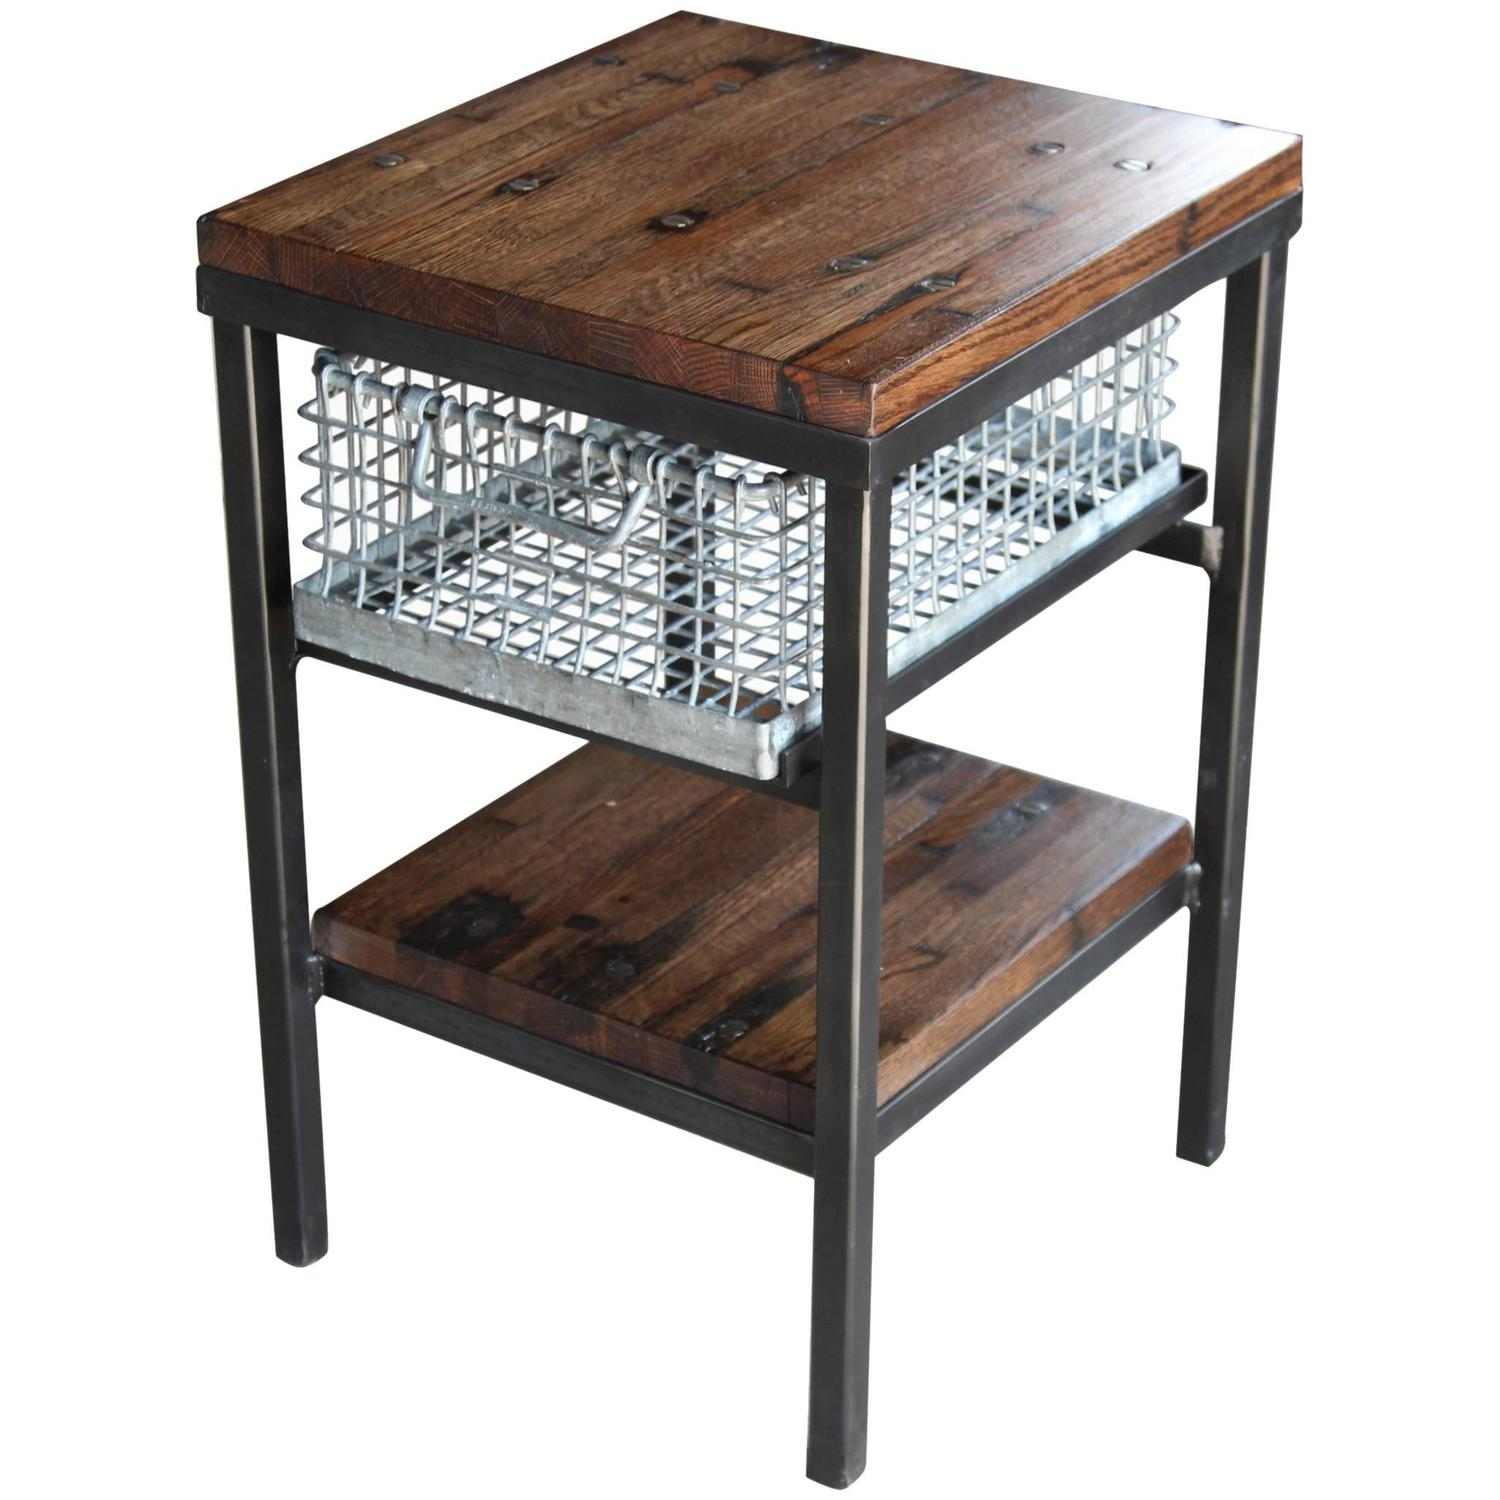 Amazing photo of Galvanized Storage Basket Nightstand End Table with Shelf Using Wood  with #674938 color and 1500x1500 pixels